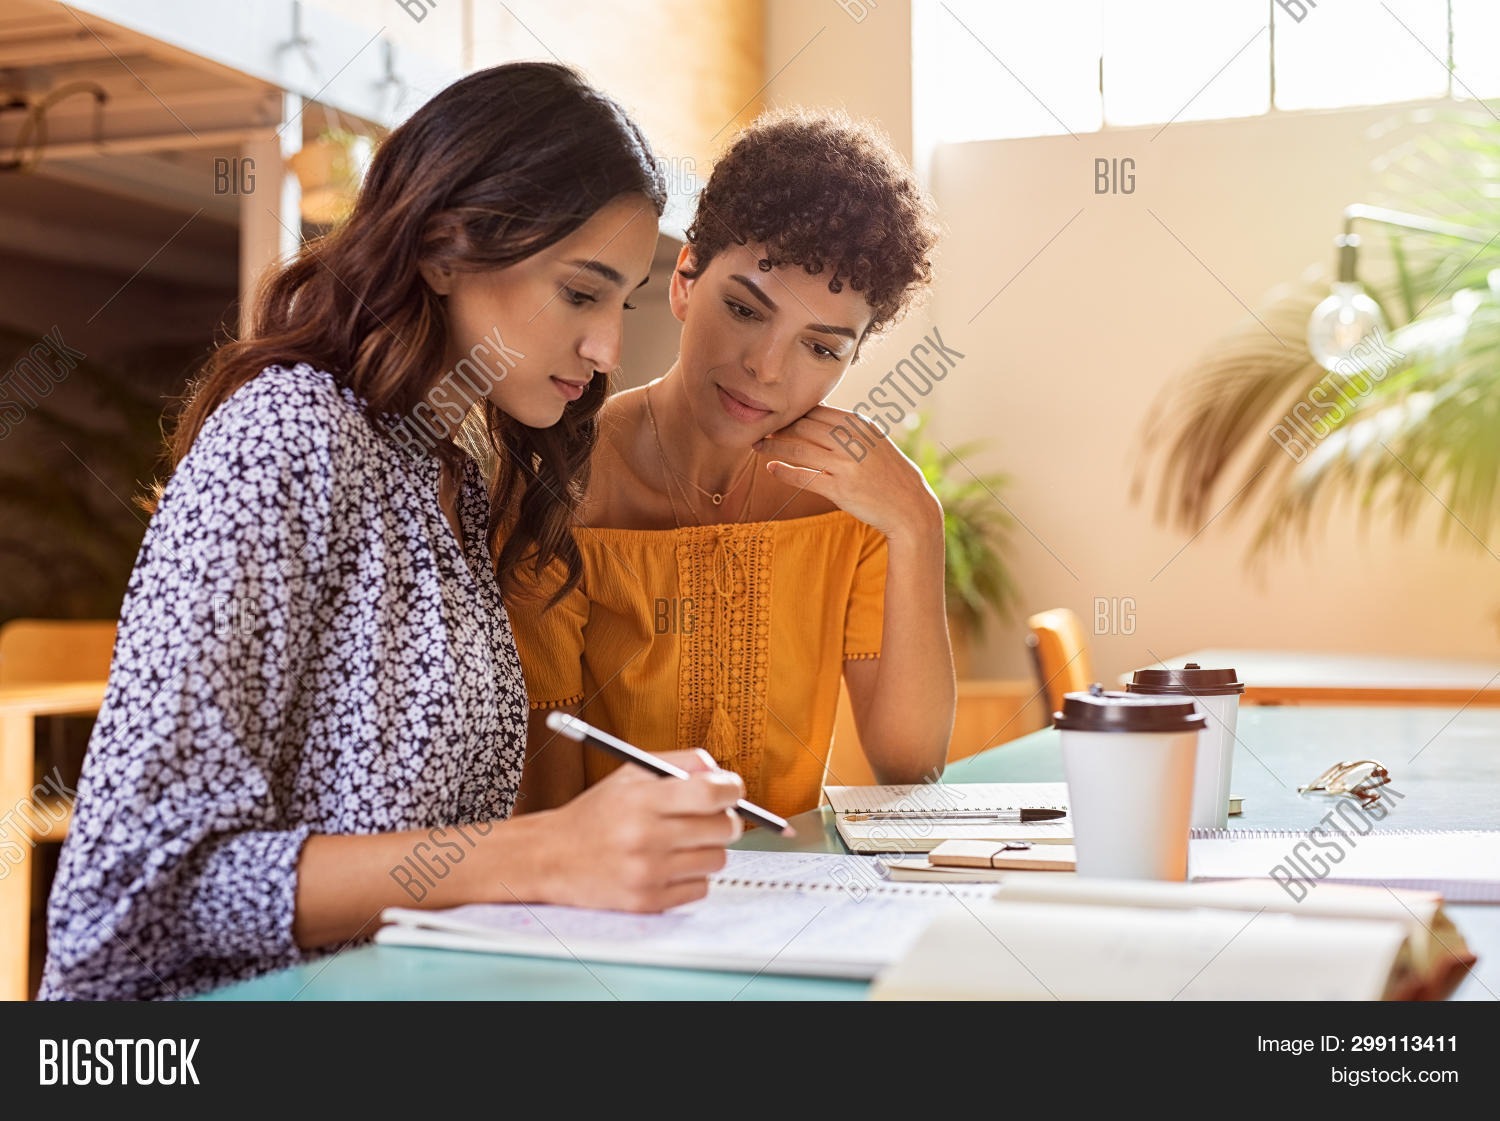 Young multiethnic women studying together at library. High school or college students studying and r